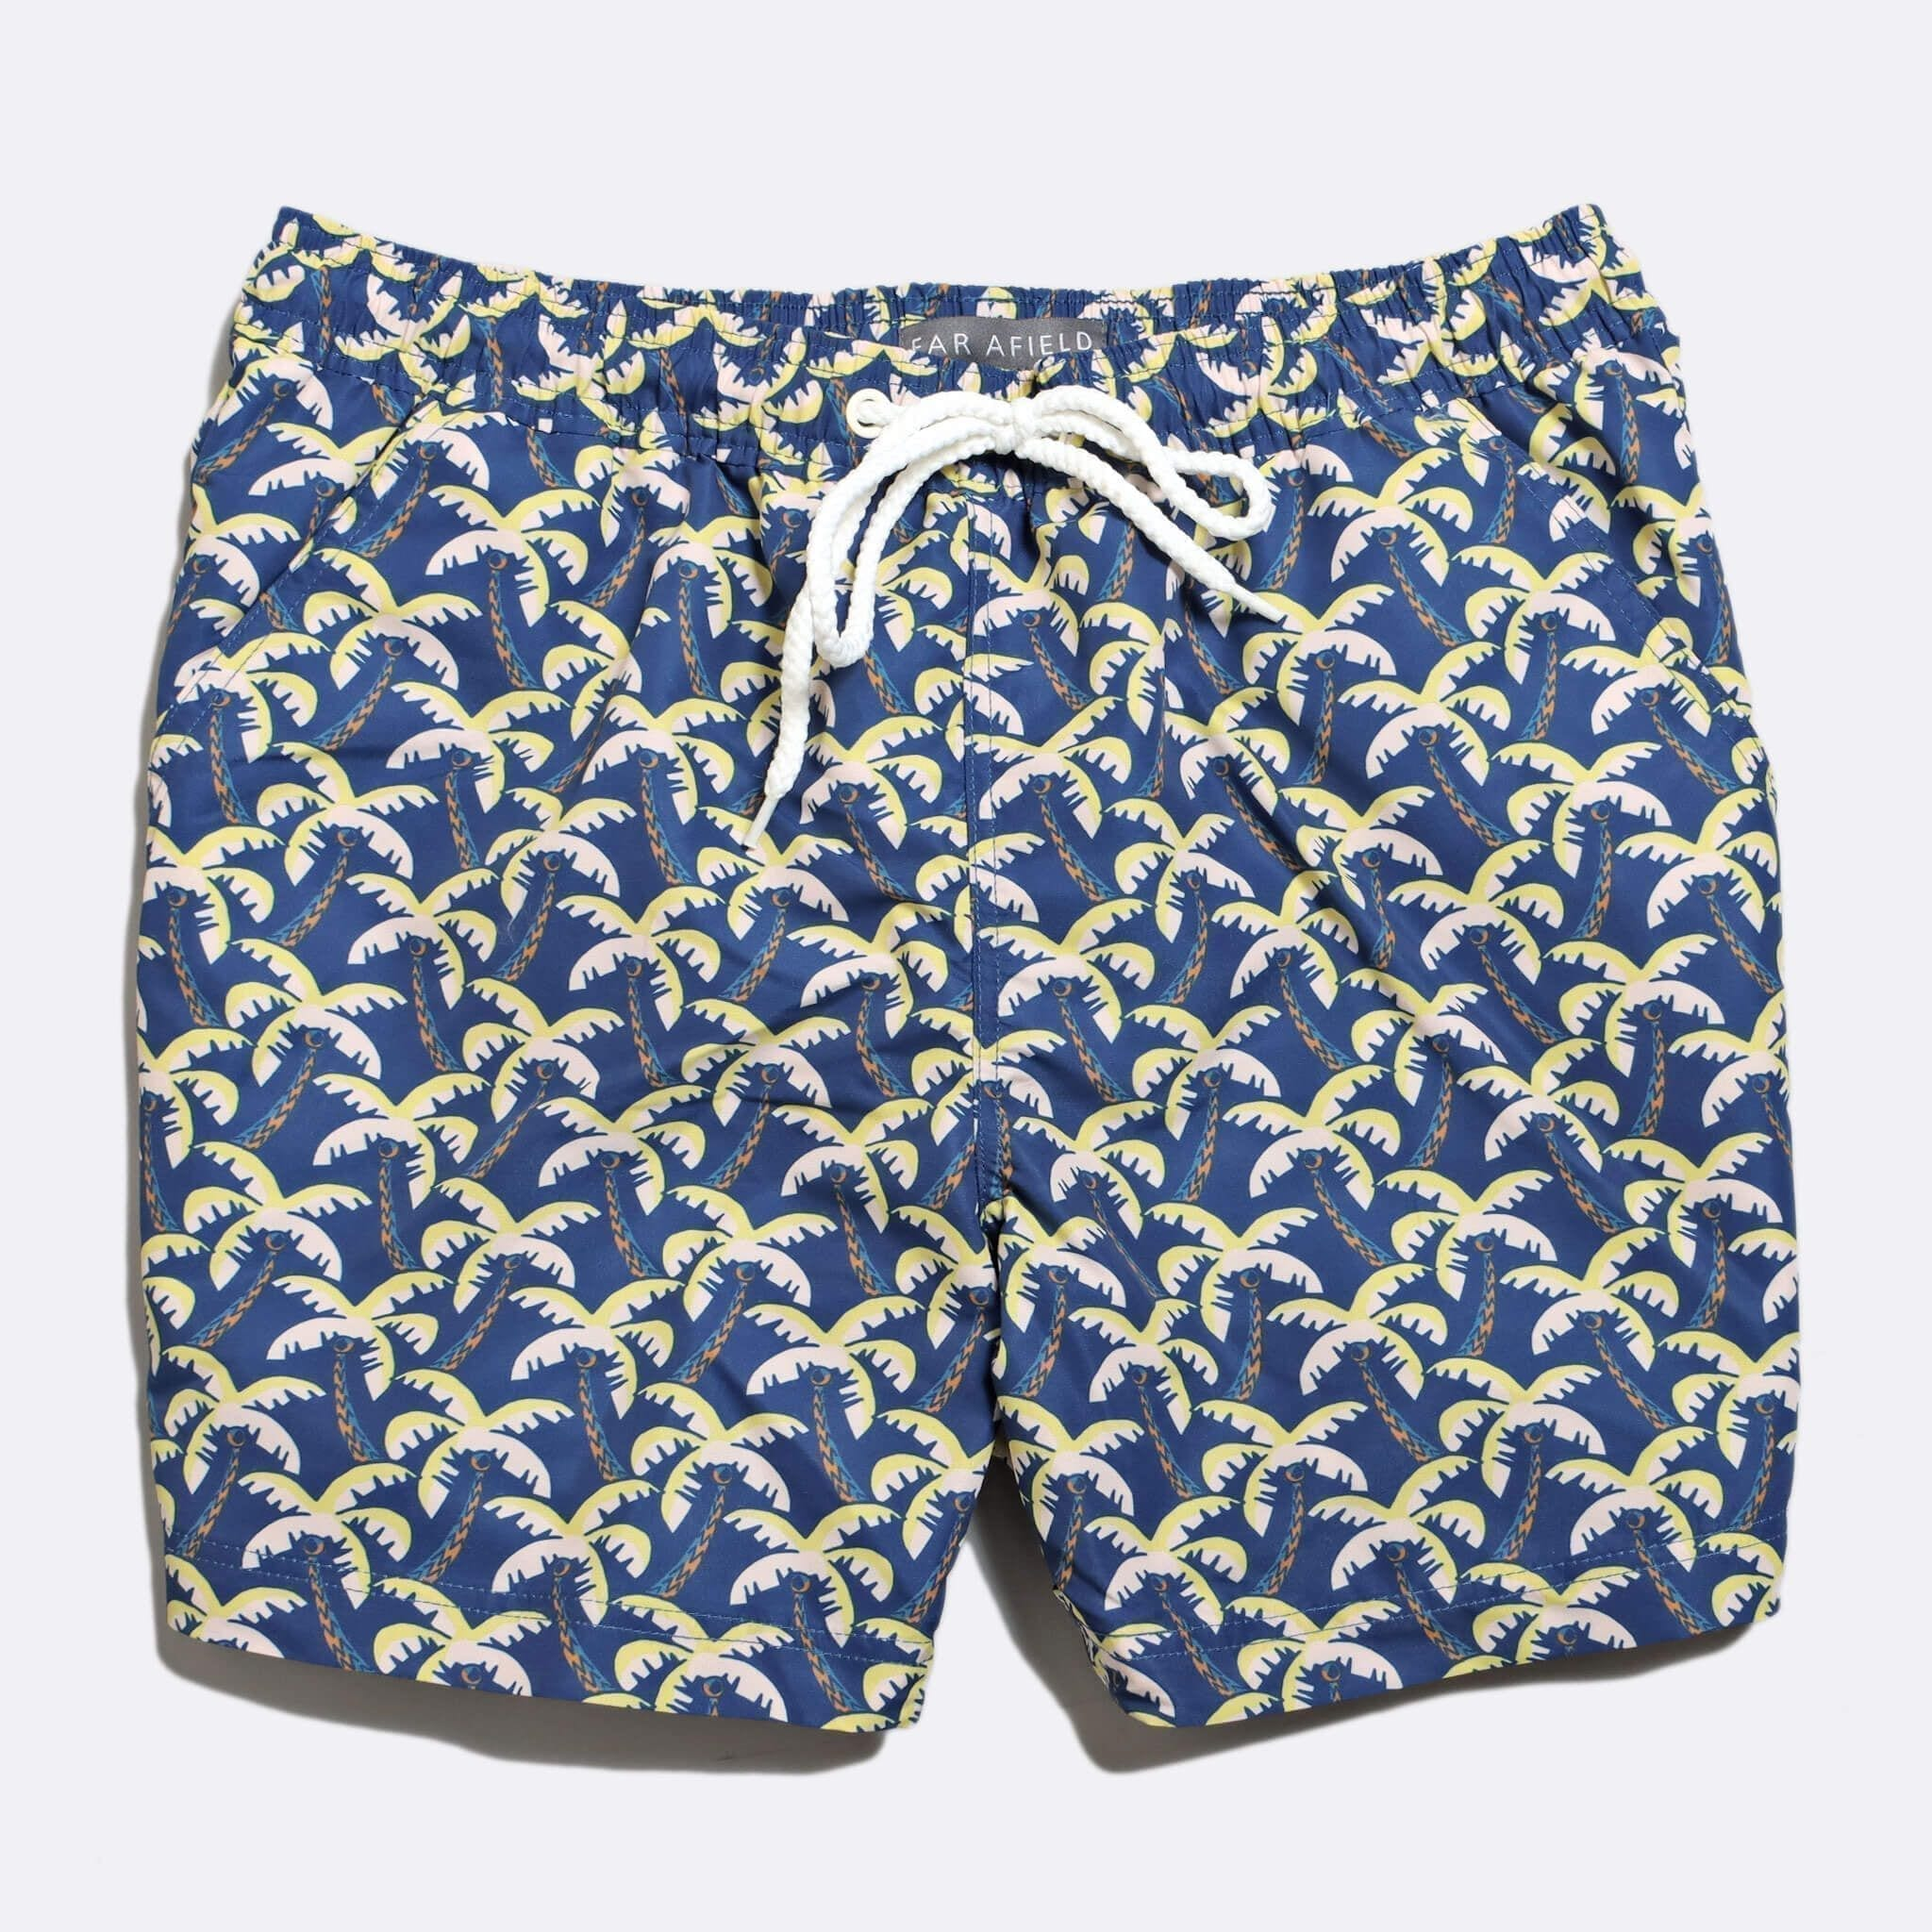 Far Afield x Selfridges Palm Print 50% Off Selected Recycled Plastic Swimwear